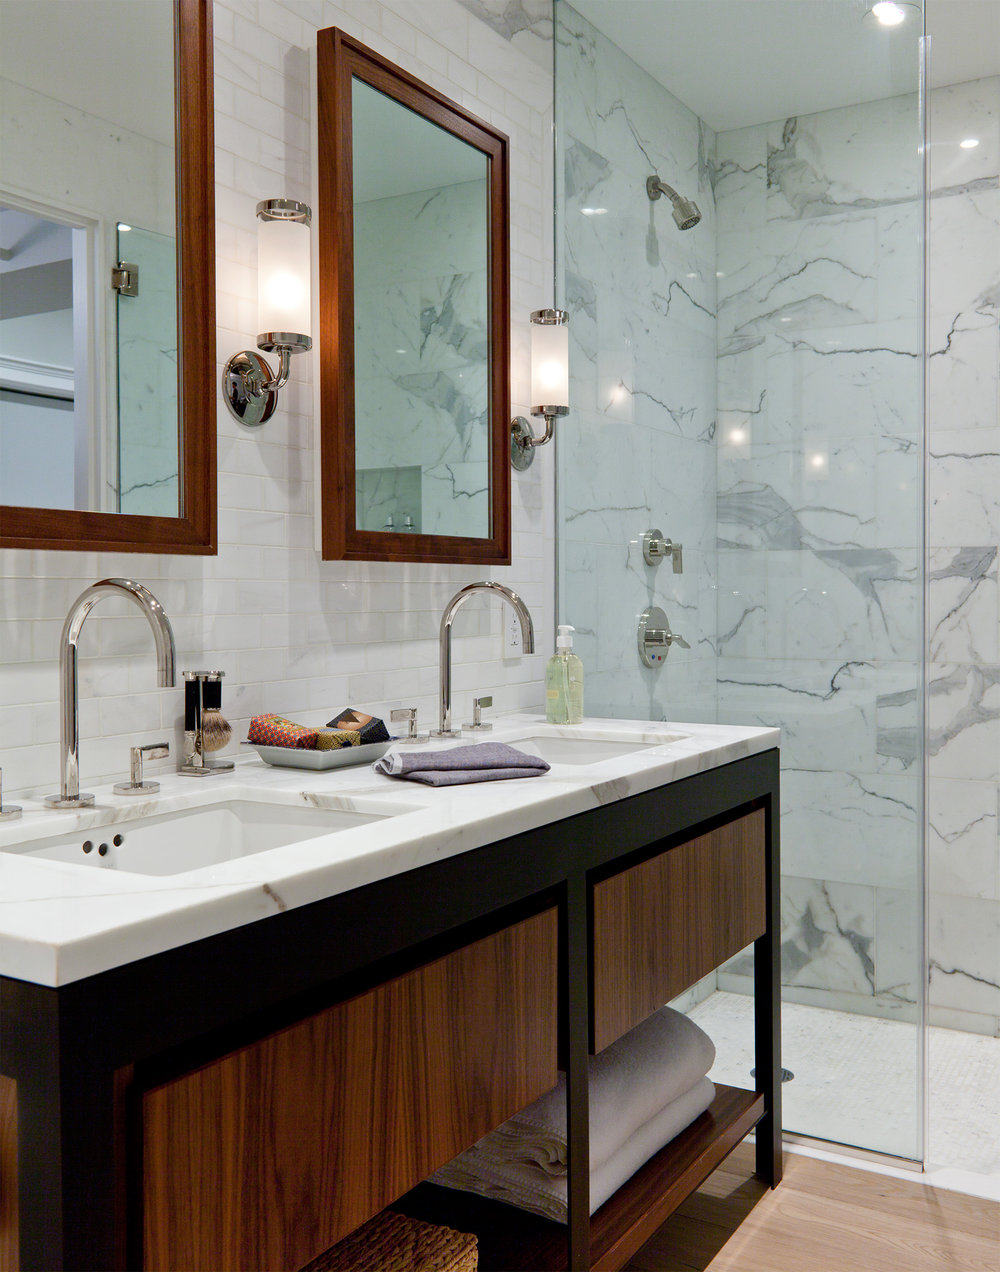 11-Master Bathroom copy.jpg